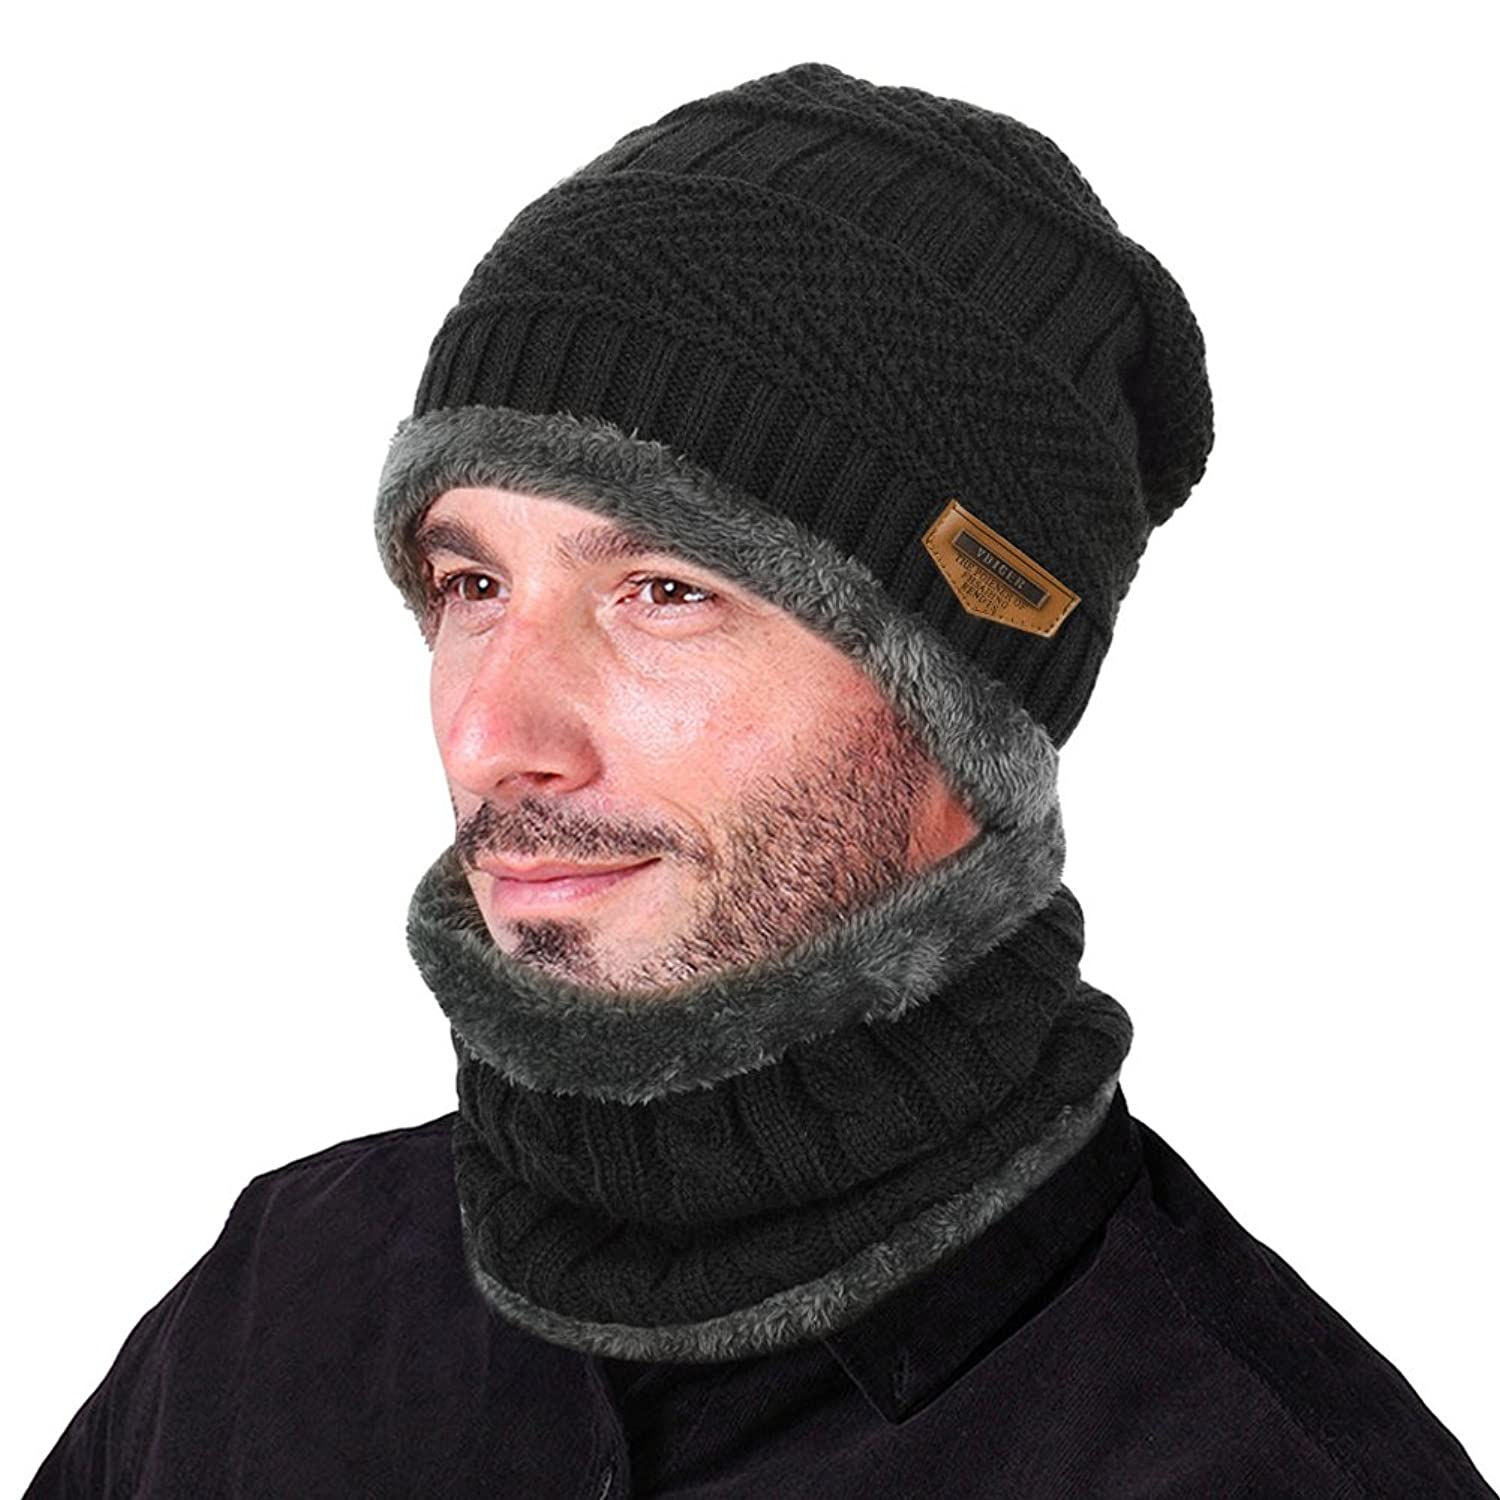 2-Pieces Winter Beanie Scarf Set Warm Hat Thick Knit Skull Cap for Men Women ee010498f55